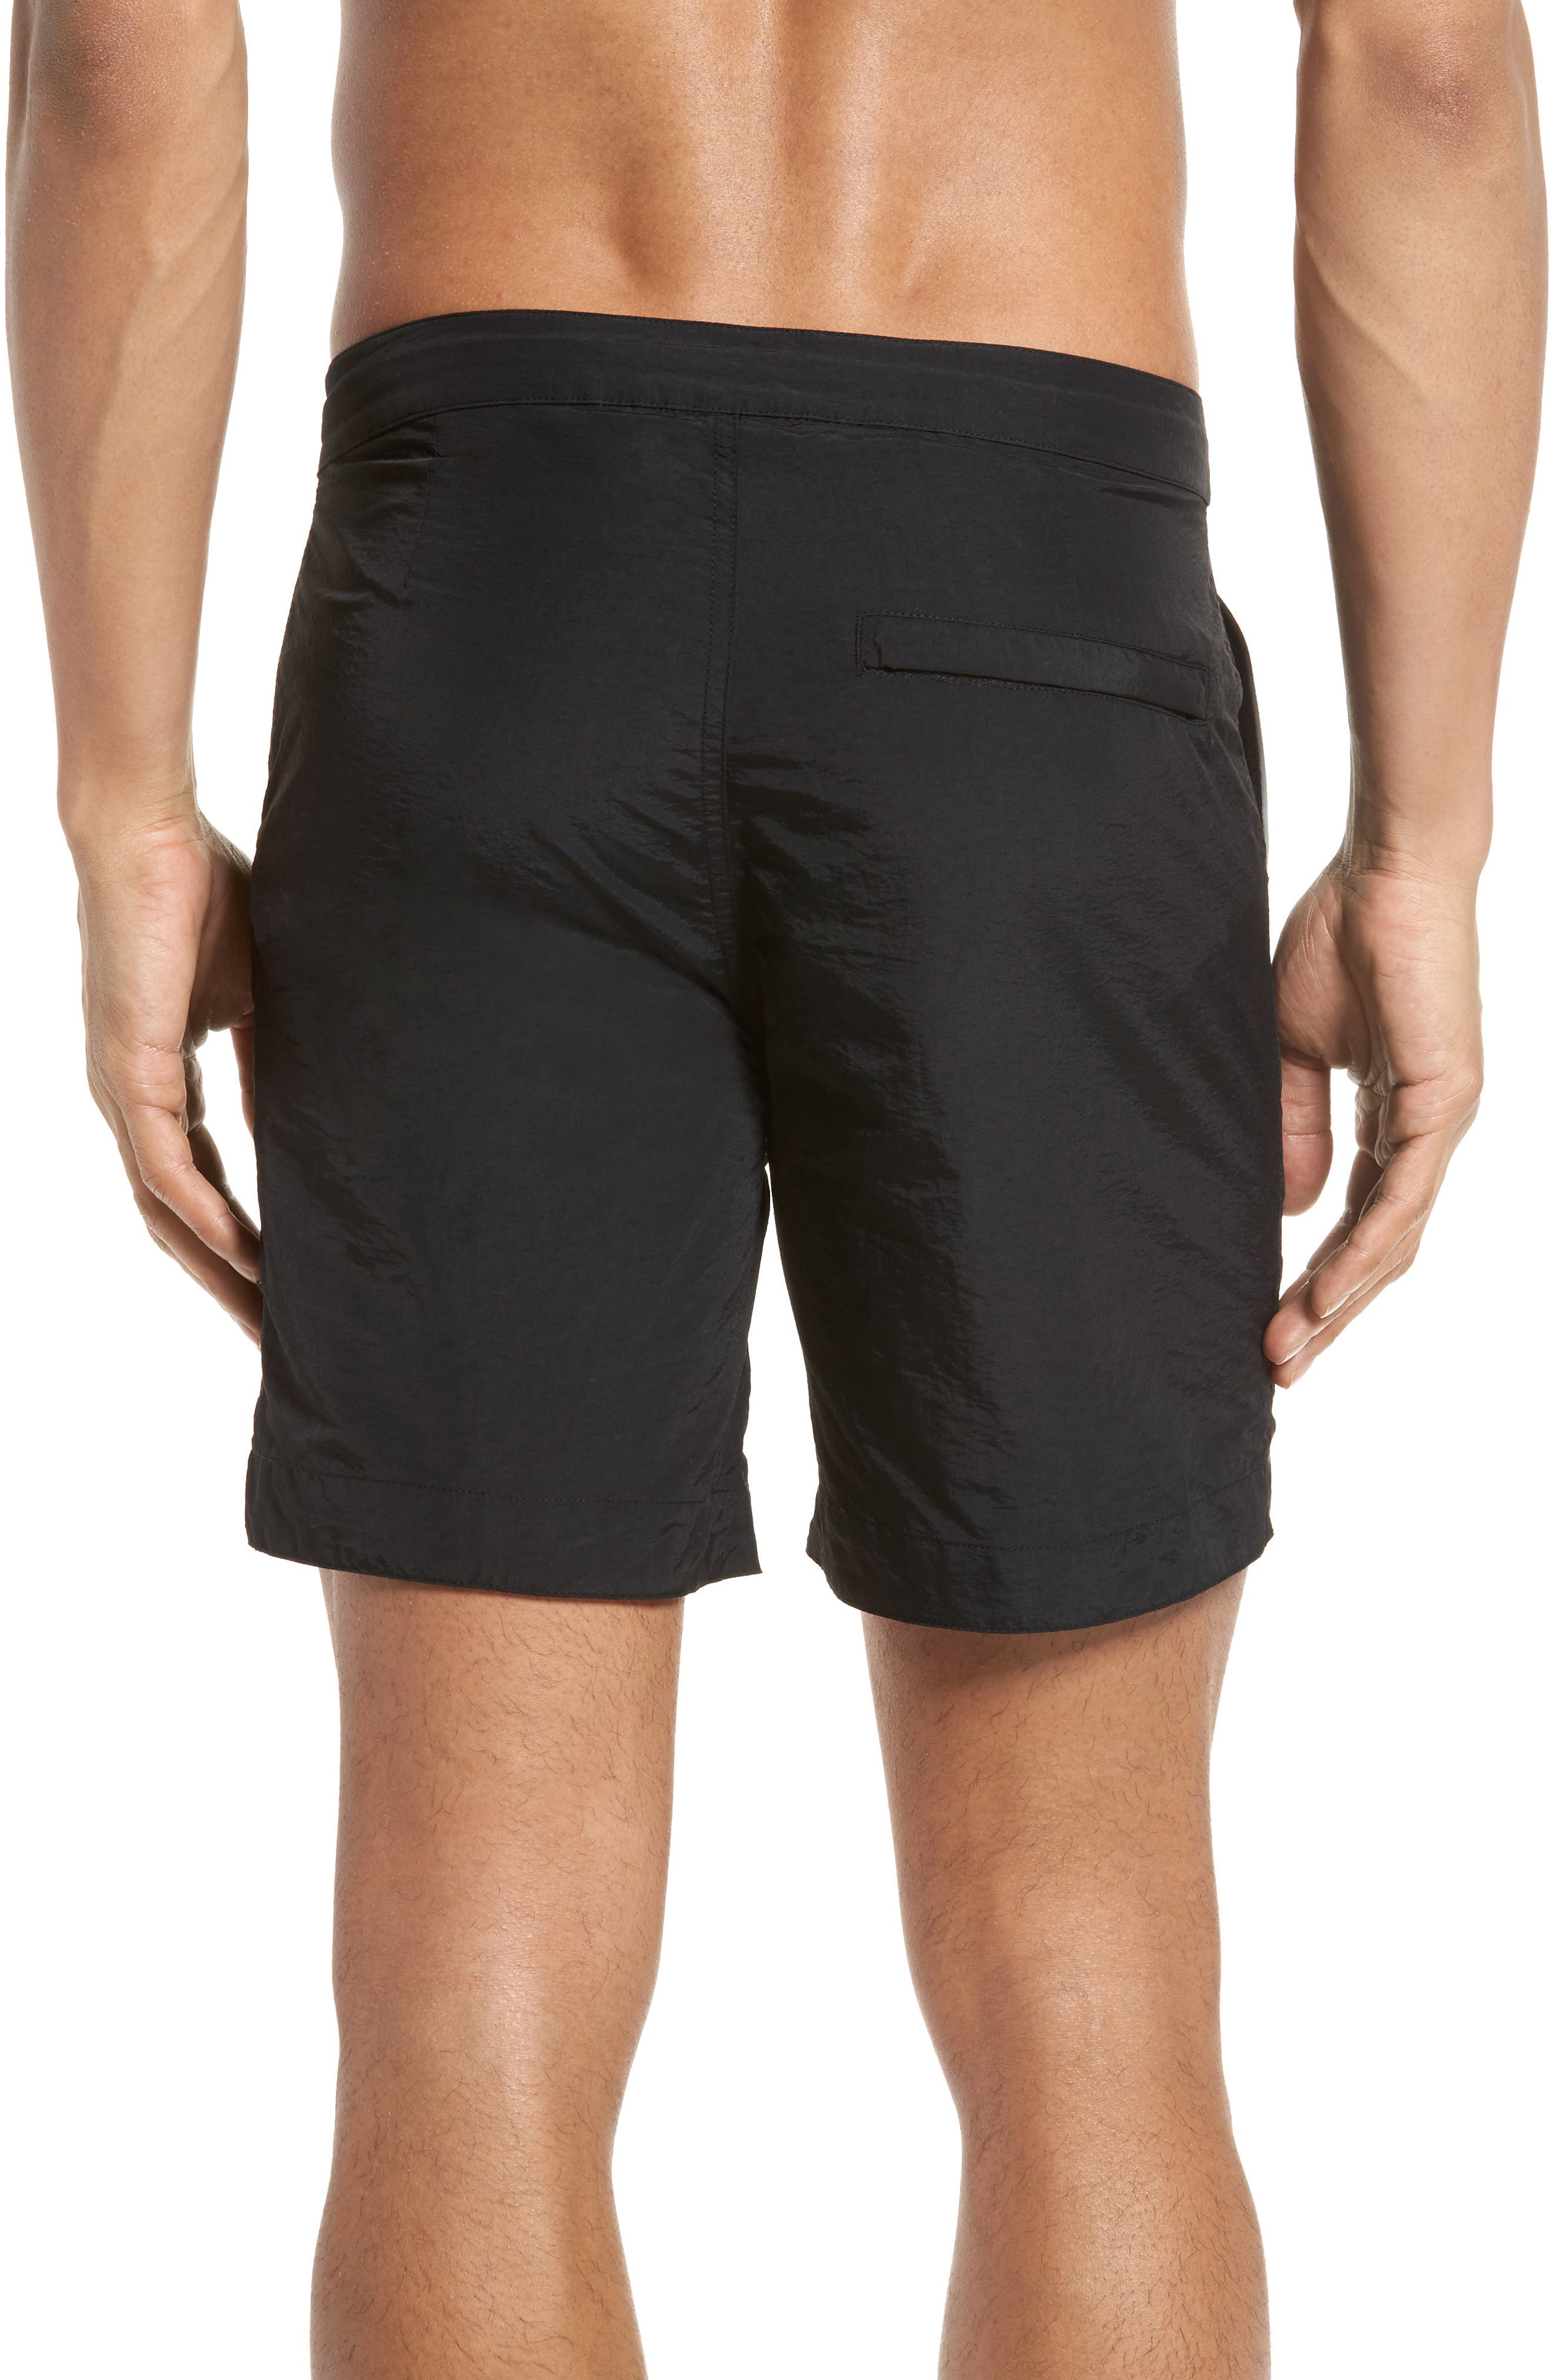 Rio Regular Fit Swim Trunks,                             Alternate thumbnail 2, color,                             001